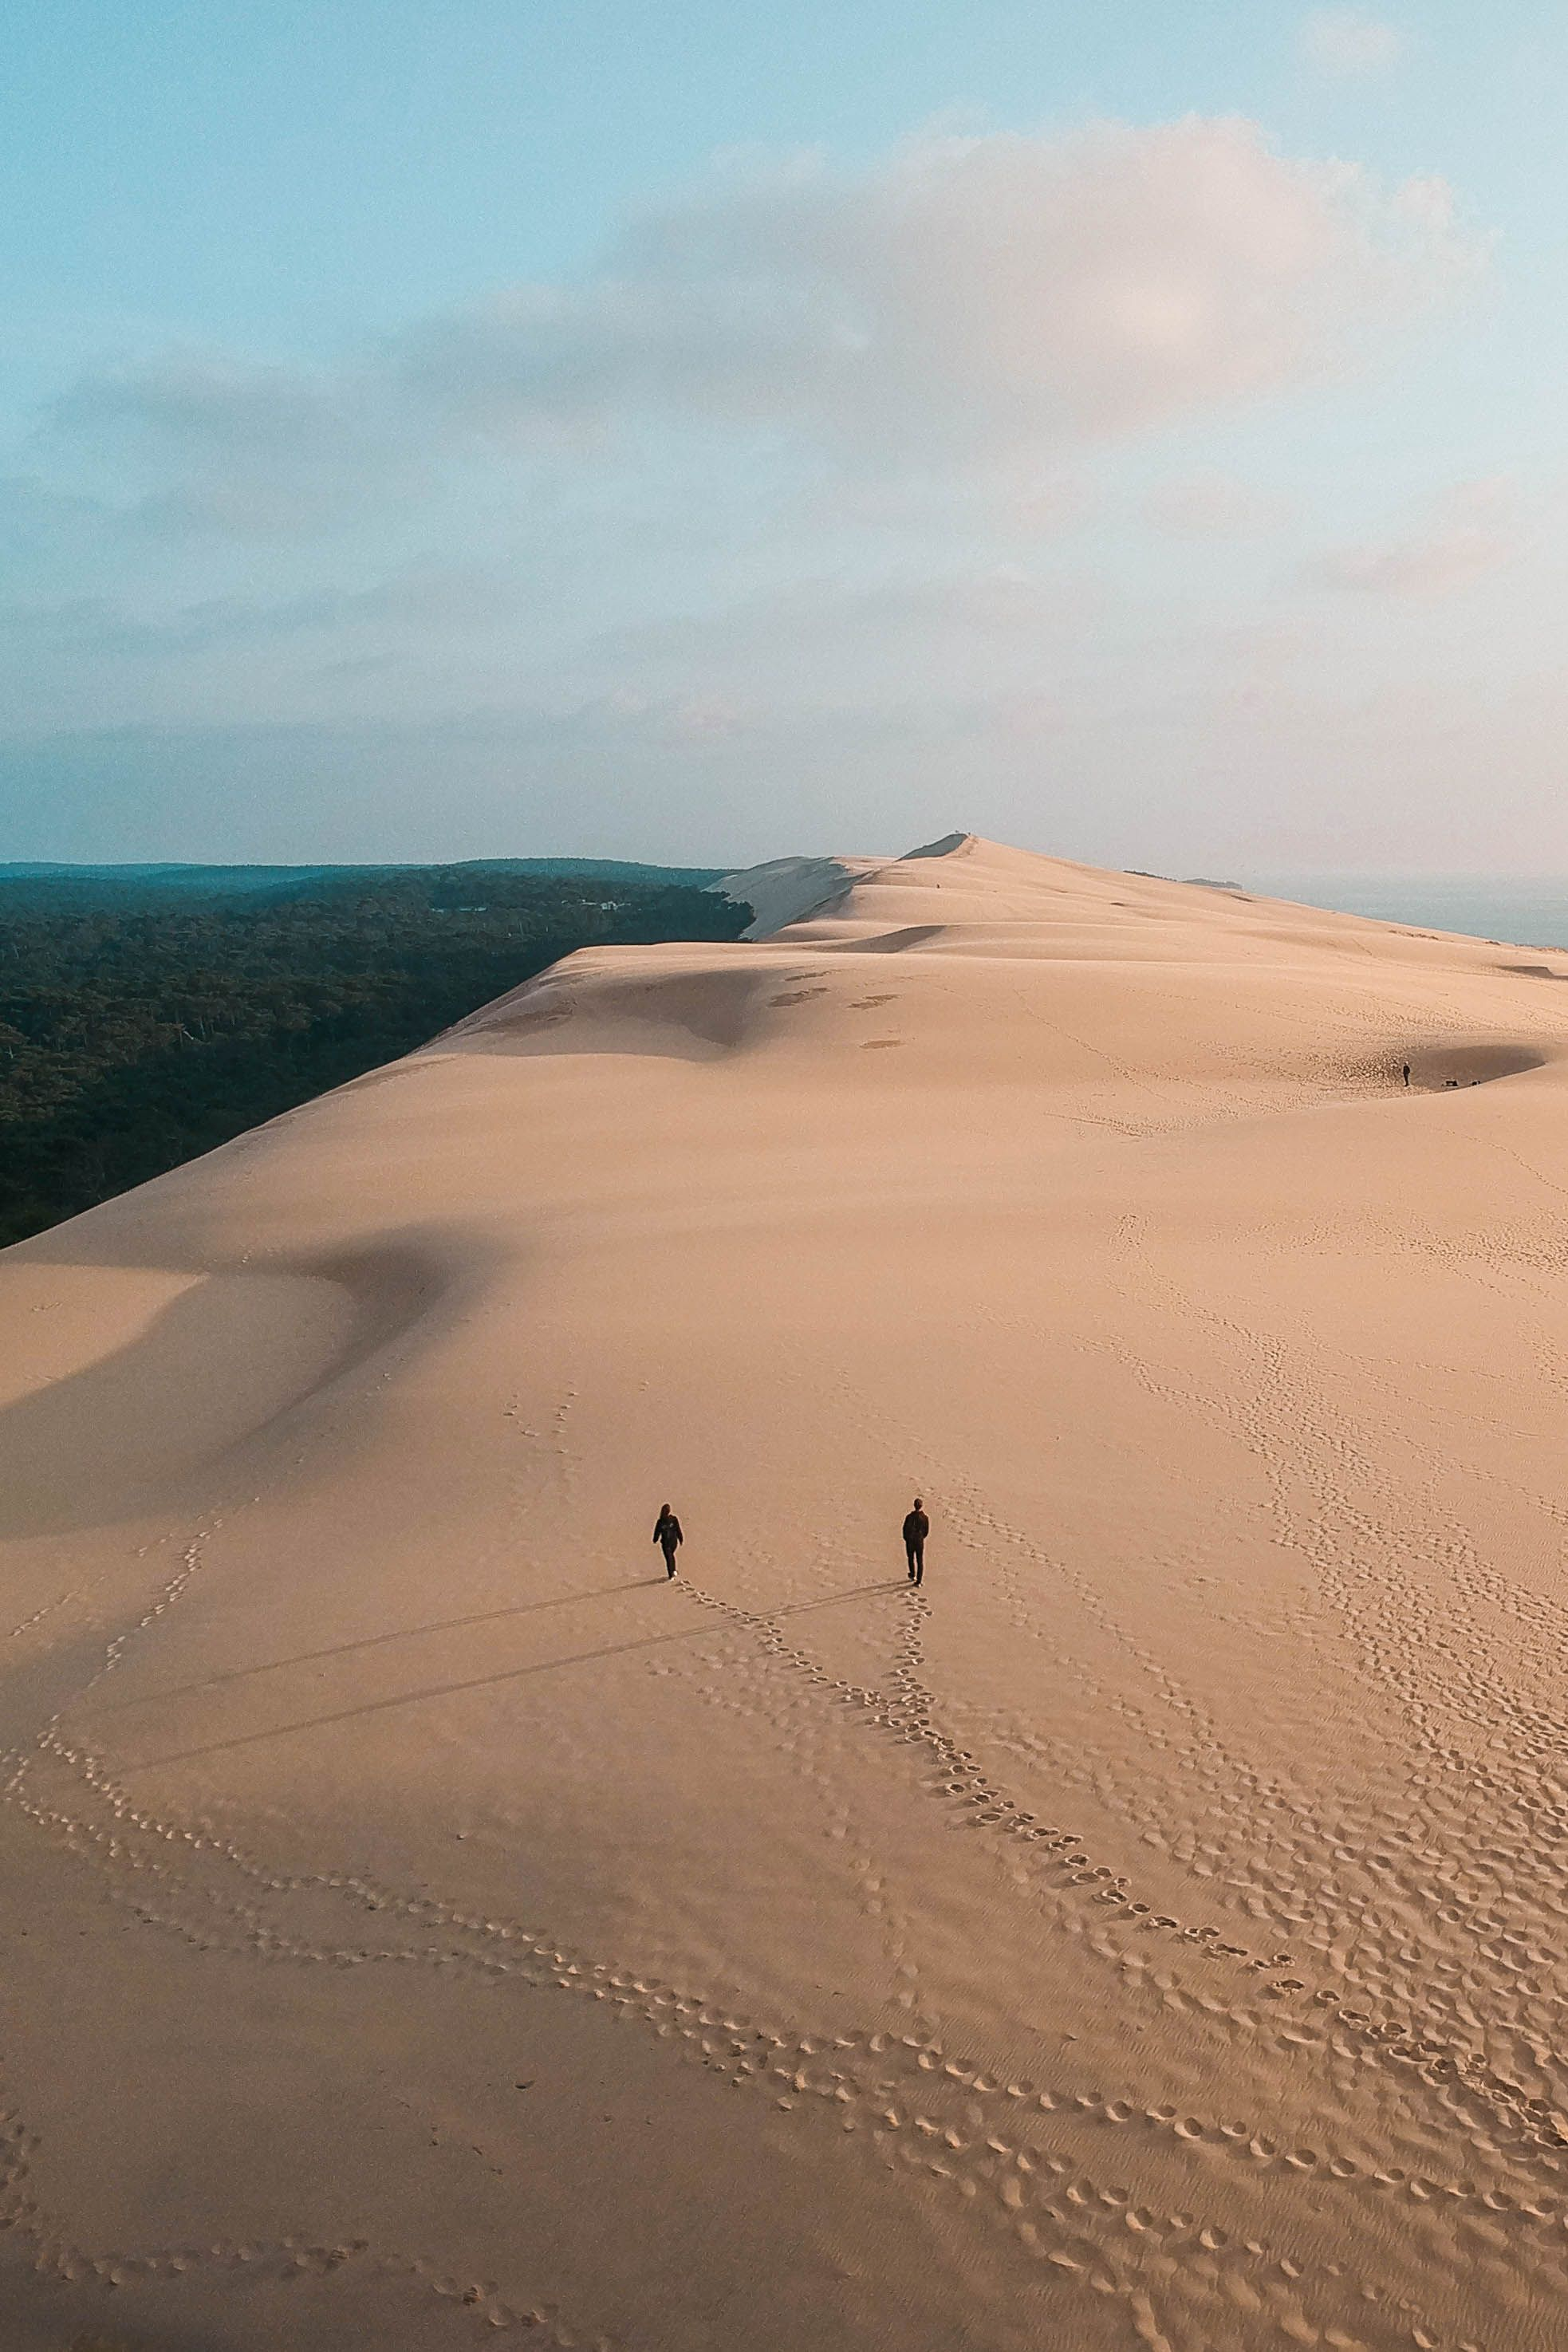 Dune du Pilat is the highest sand dune in Europe located in South-West France. It's a unique travel destination and should be on everyone's travel bucket list! Dune du Pilat is easy to get to from Bordeaux or Arcachon Bay. #travelblog #visitfrance #travelcouple #beautifuldestinations #instagrammableplaces #bucketlisttravel #summerdestinations #europetravel #droneshots